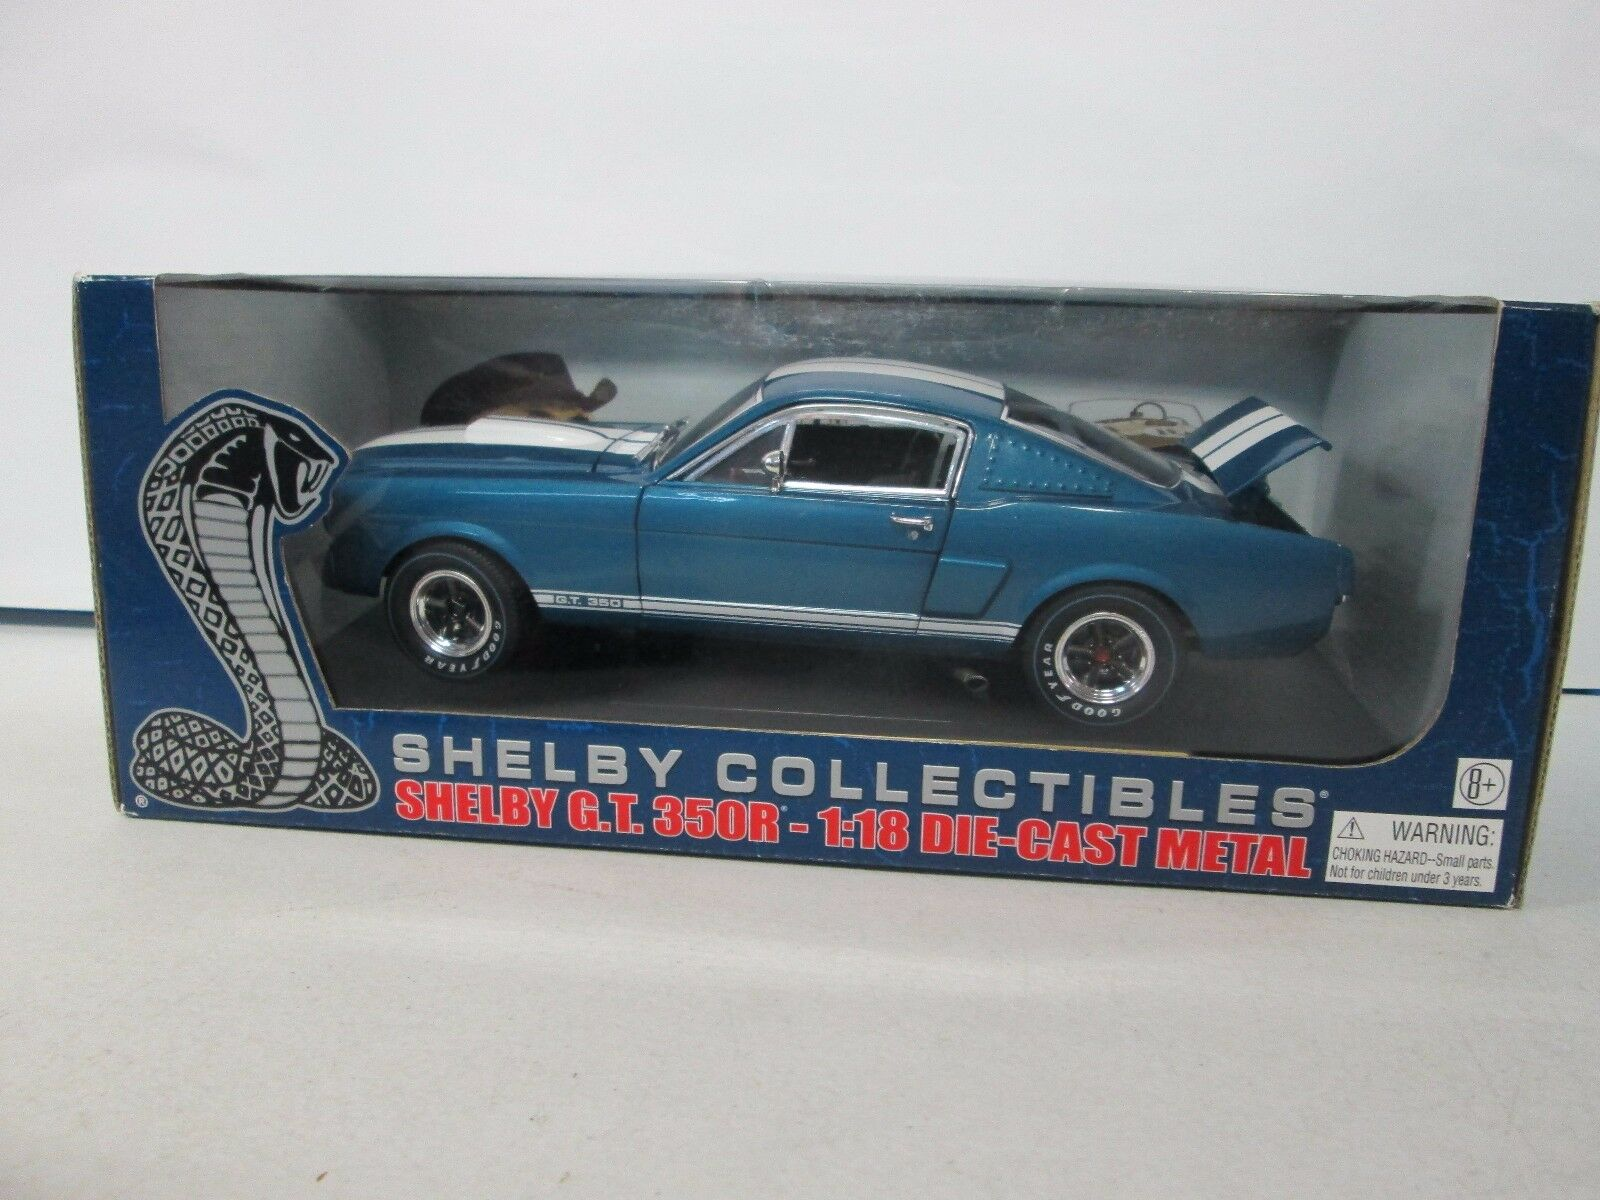 Shelby Collectibles Shelby G.T. 350R bluee 1 1 1 18 51f9d9